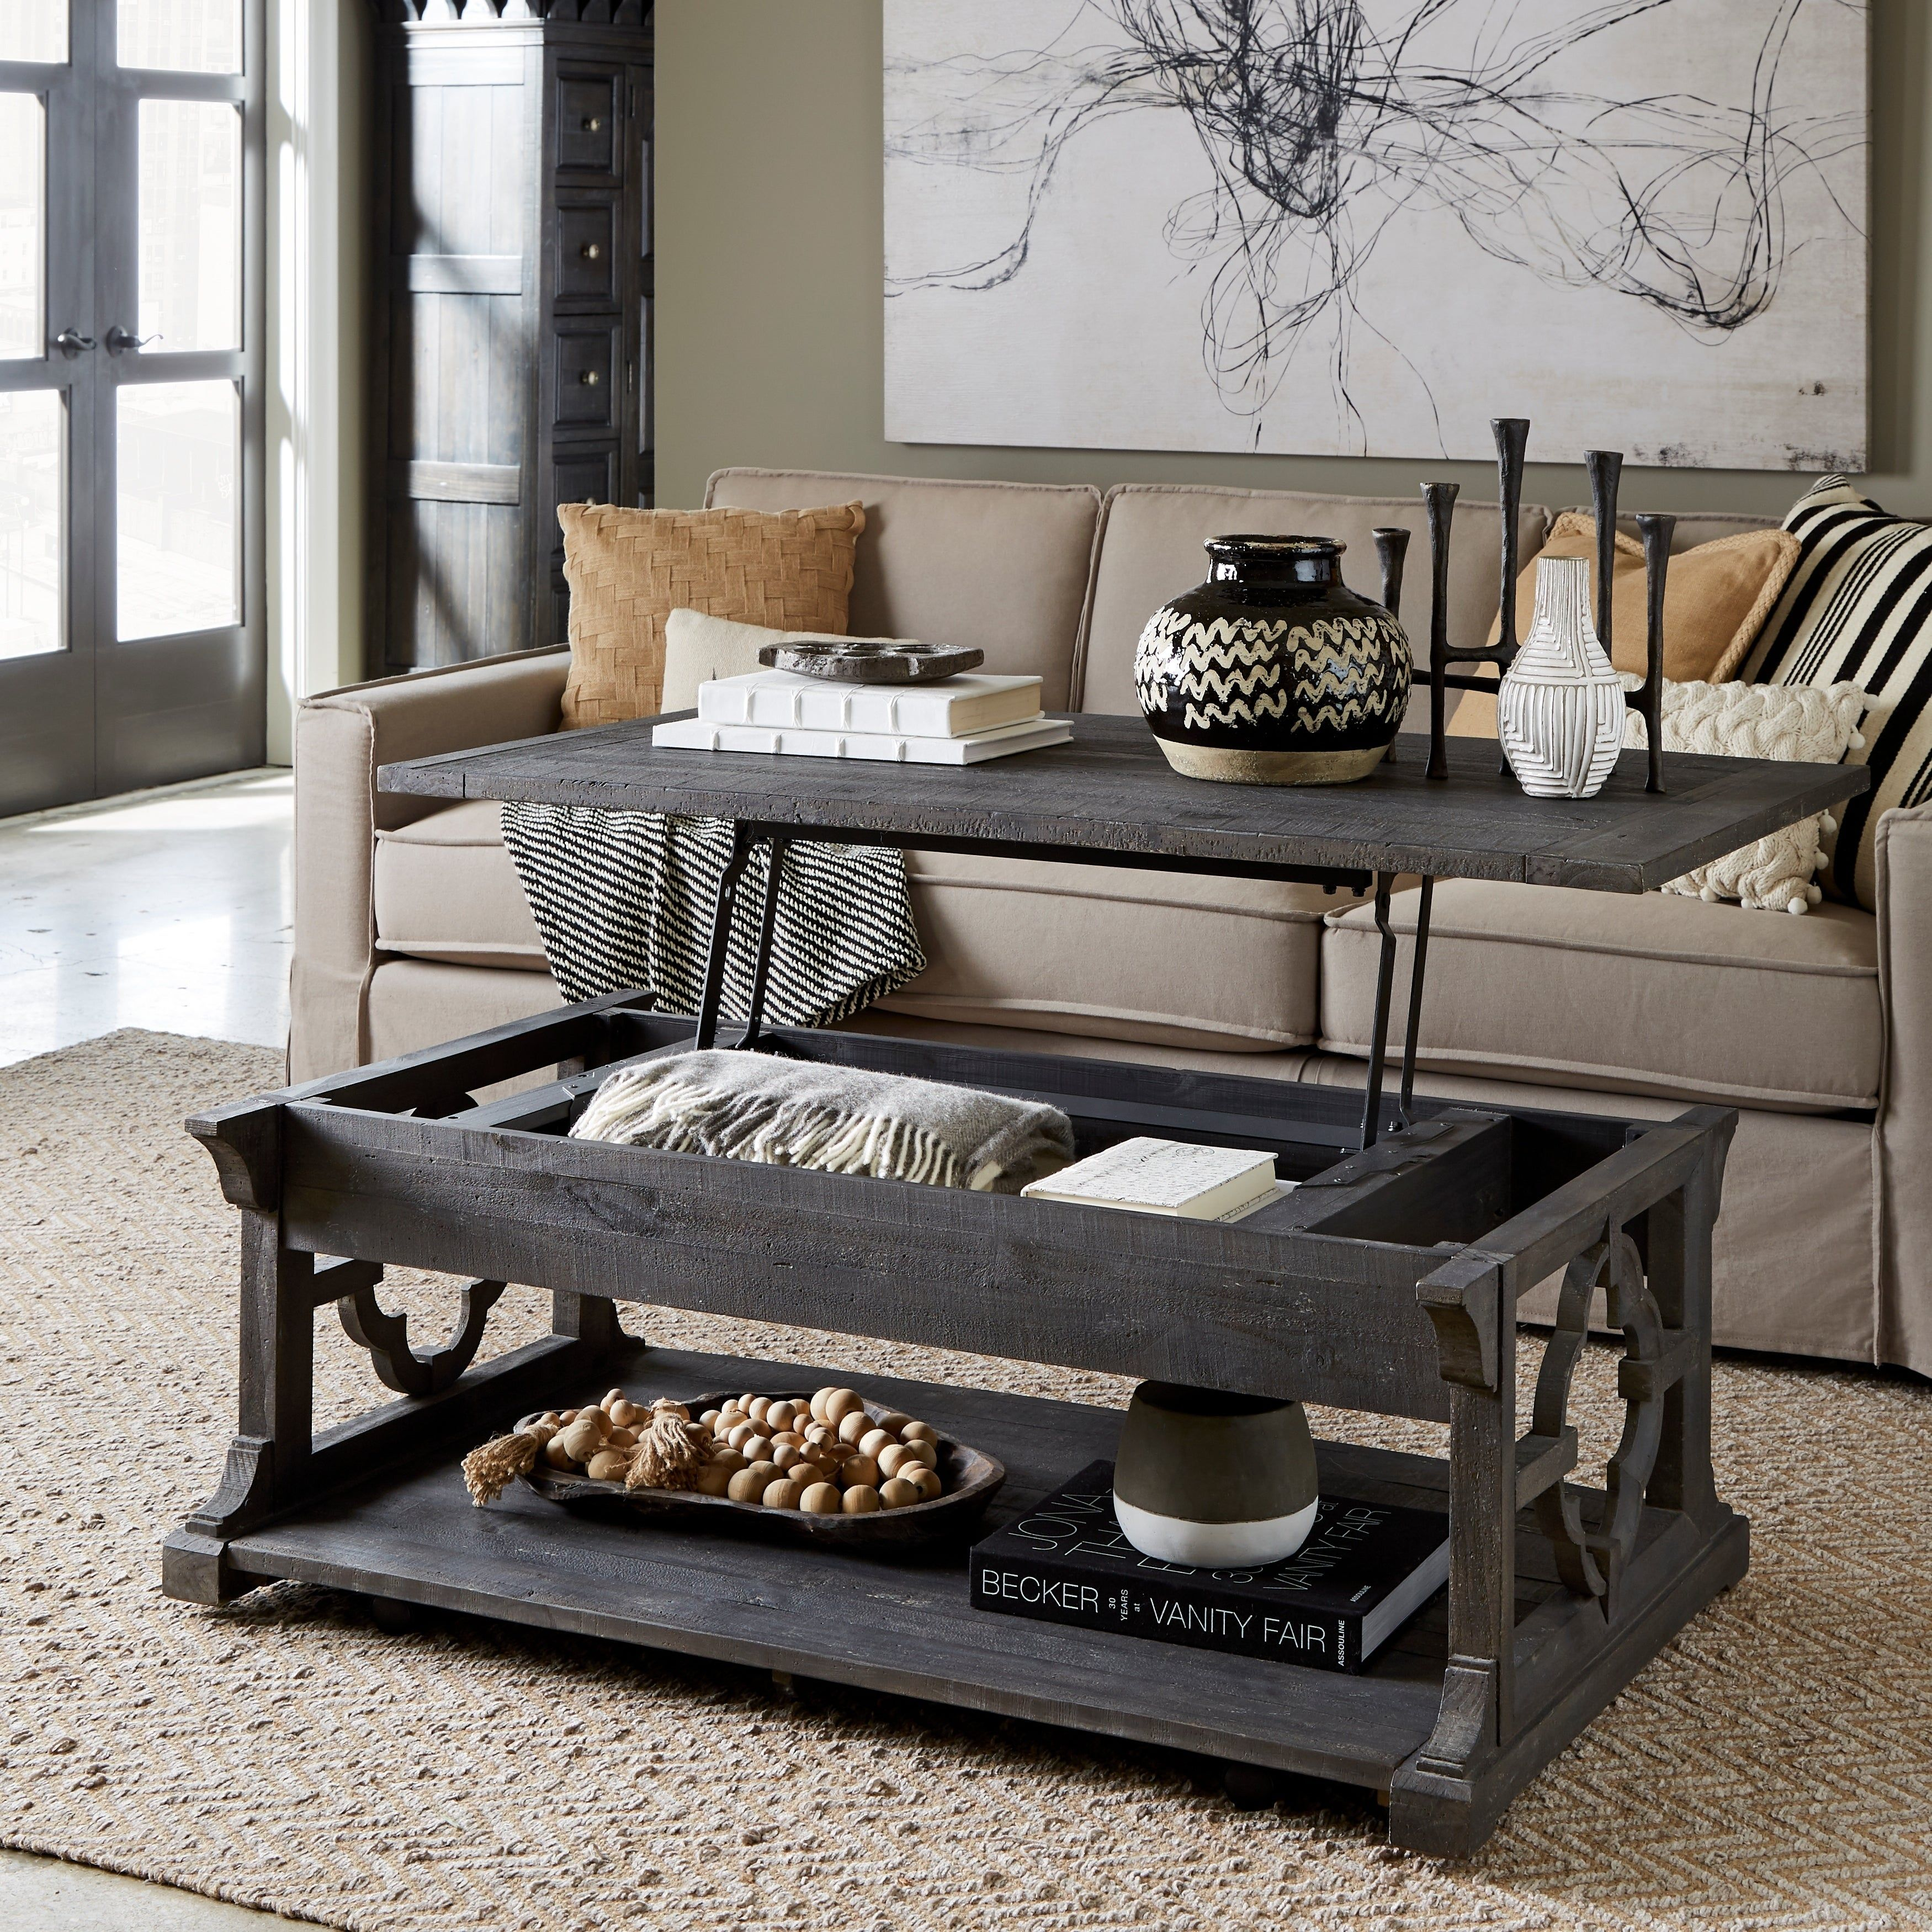 23 Photos Of Lift Top Coffee Table Interior Design References The Table Is Quite Strong You Ve G Coffee Table Coffee Table With Casters Lift Top Coffee Table [ 3500 x 3500 Pixel ]